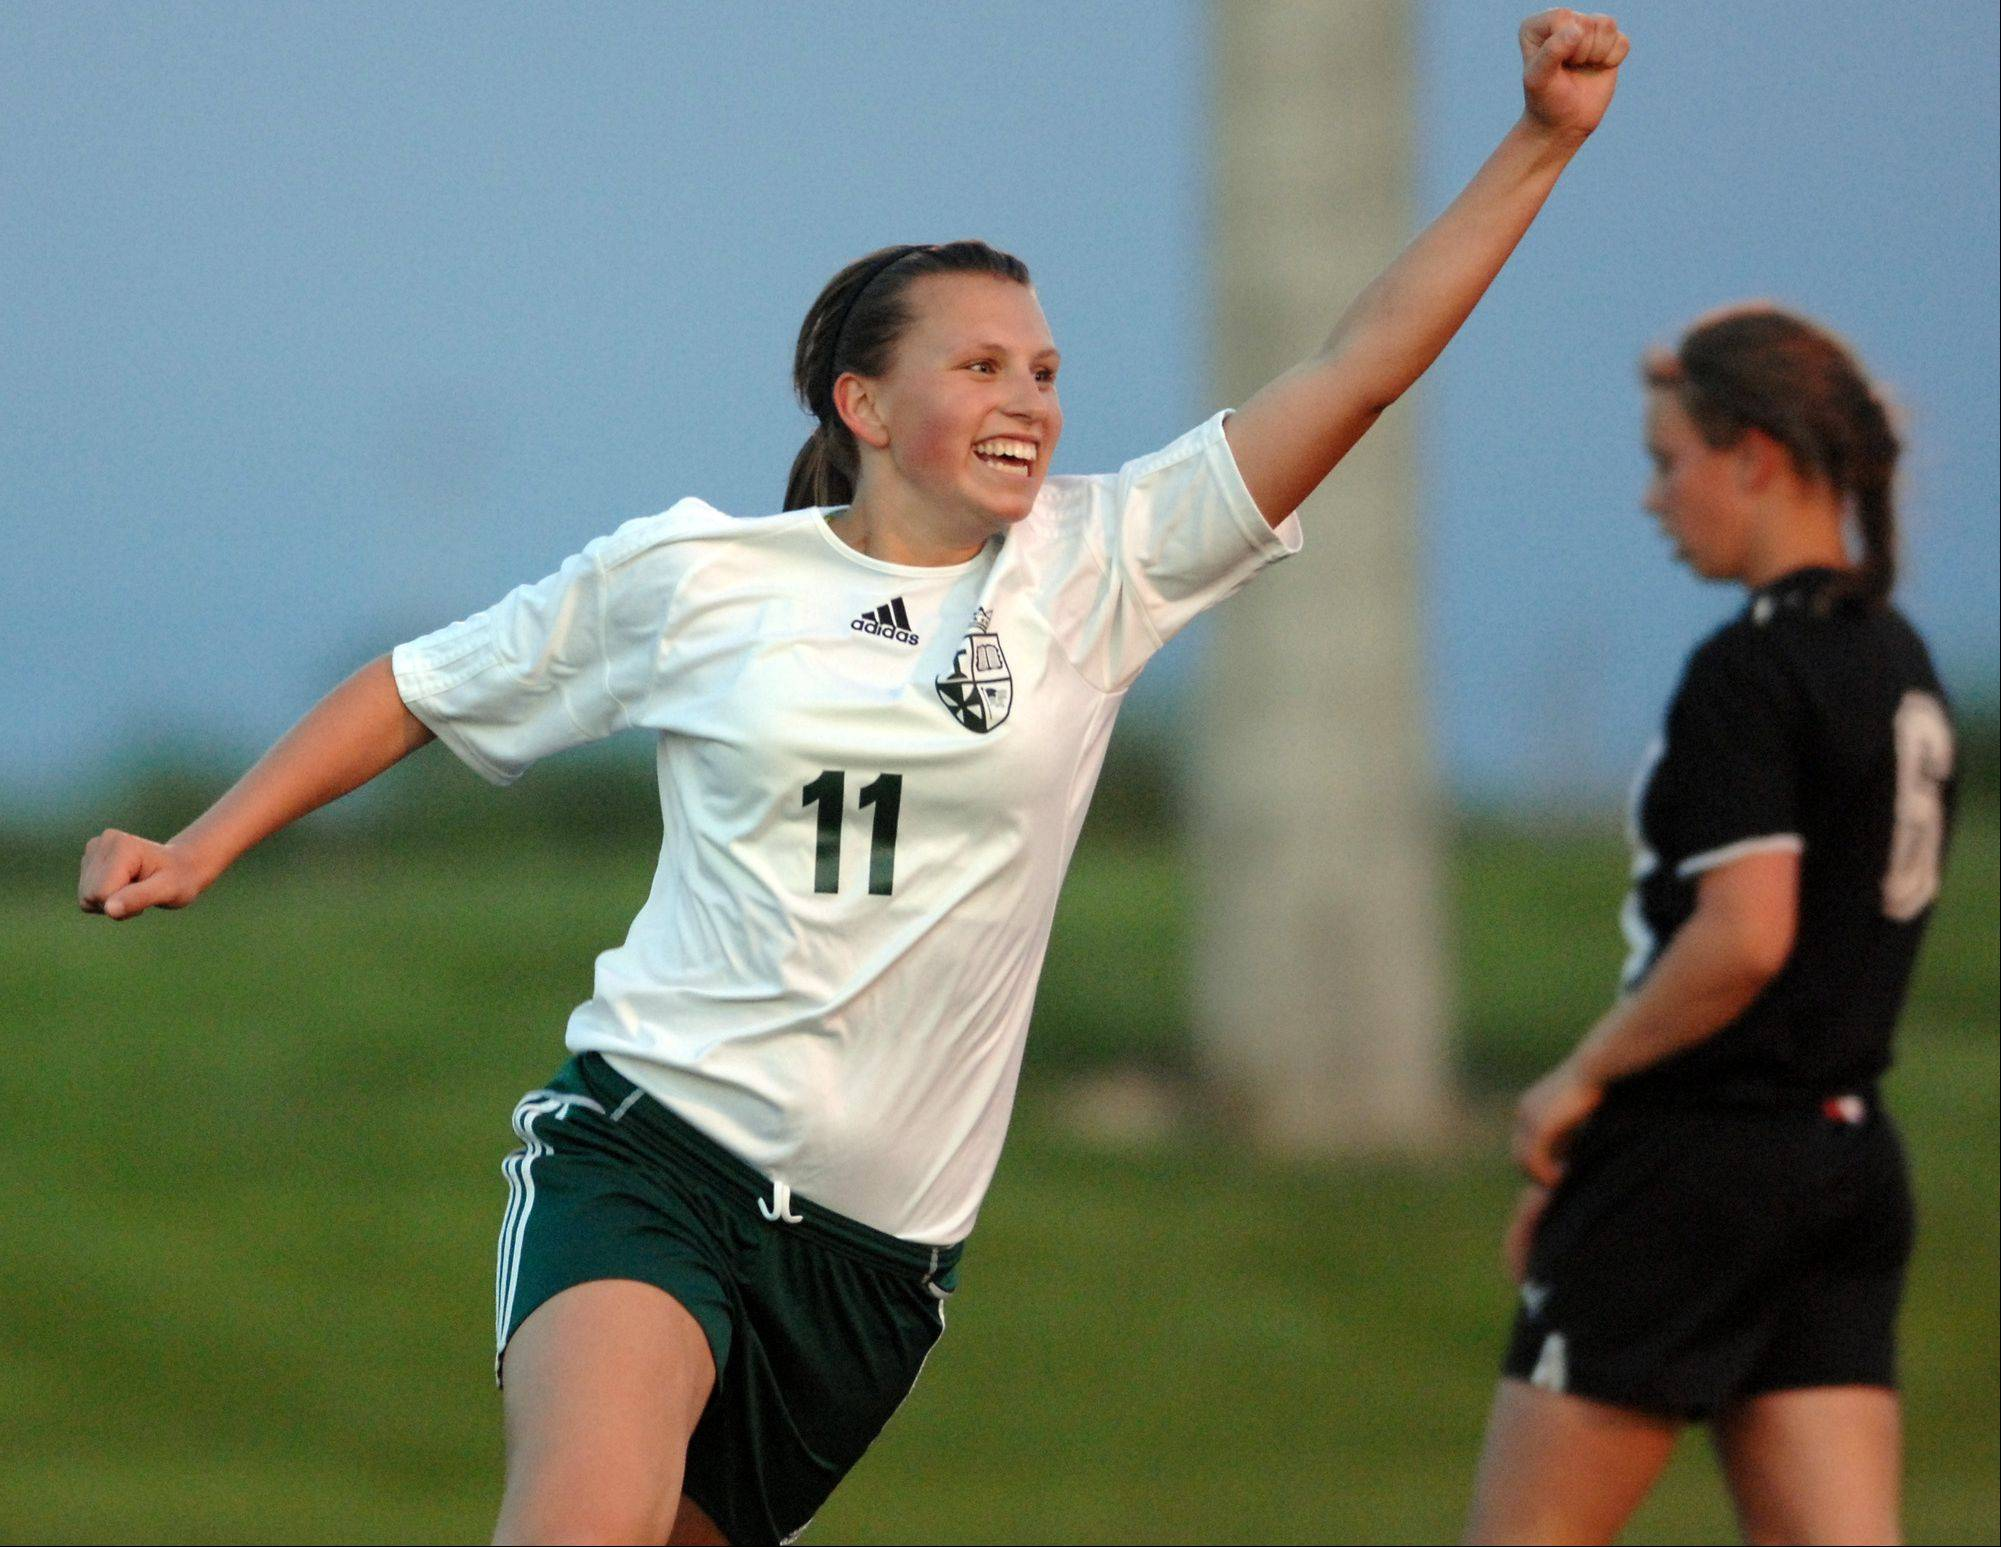 St. Edward�s Allison Kruk celebrates the first of two first-half goals against Stillman Valley last season in a Class 1A sectional semifinal game in Harvard. Kruk set a program record for goals in a season with 19 last season.